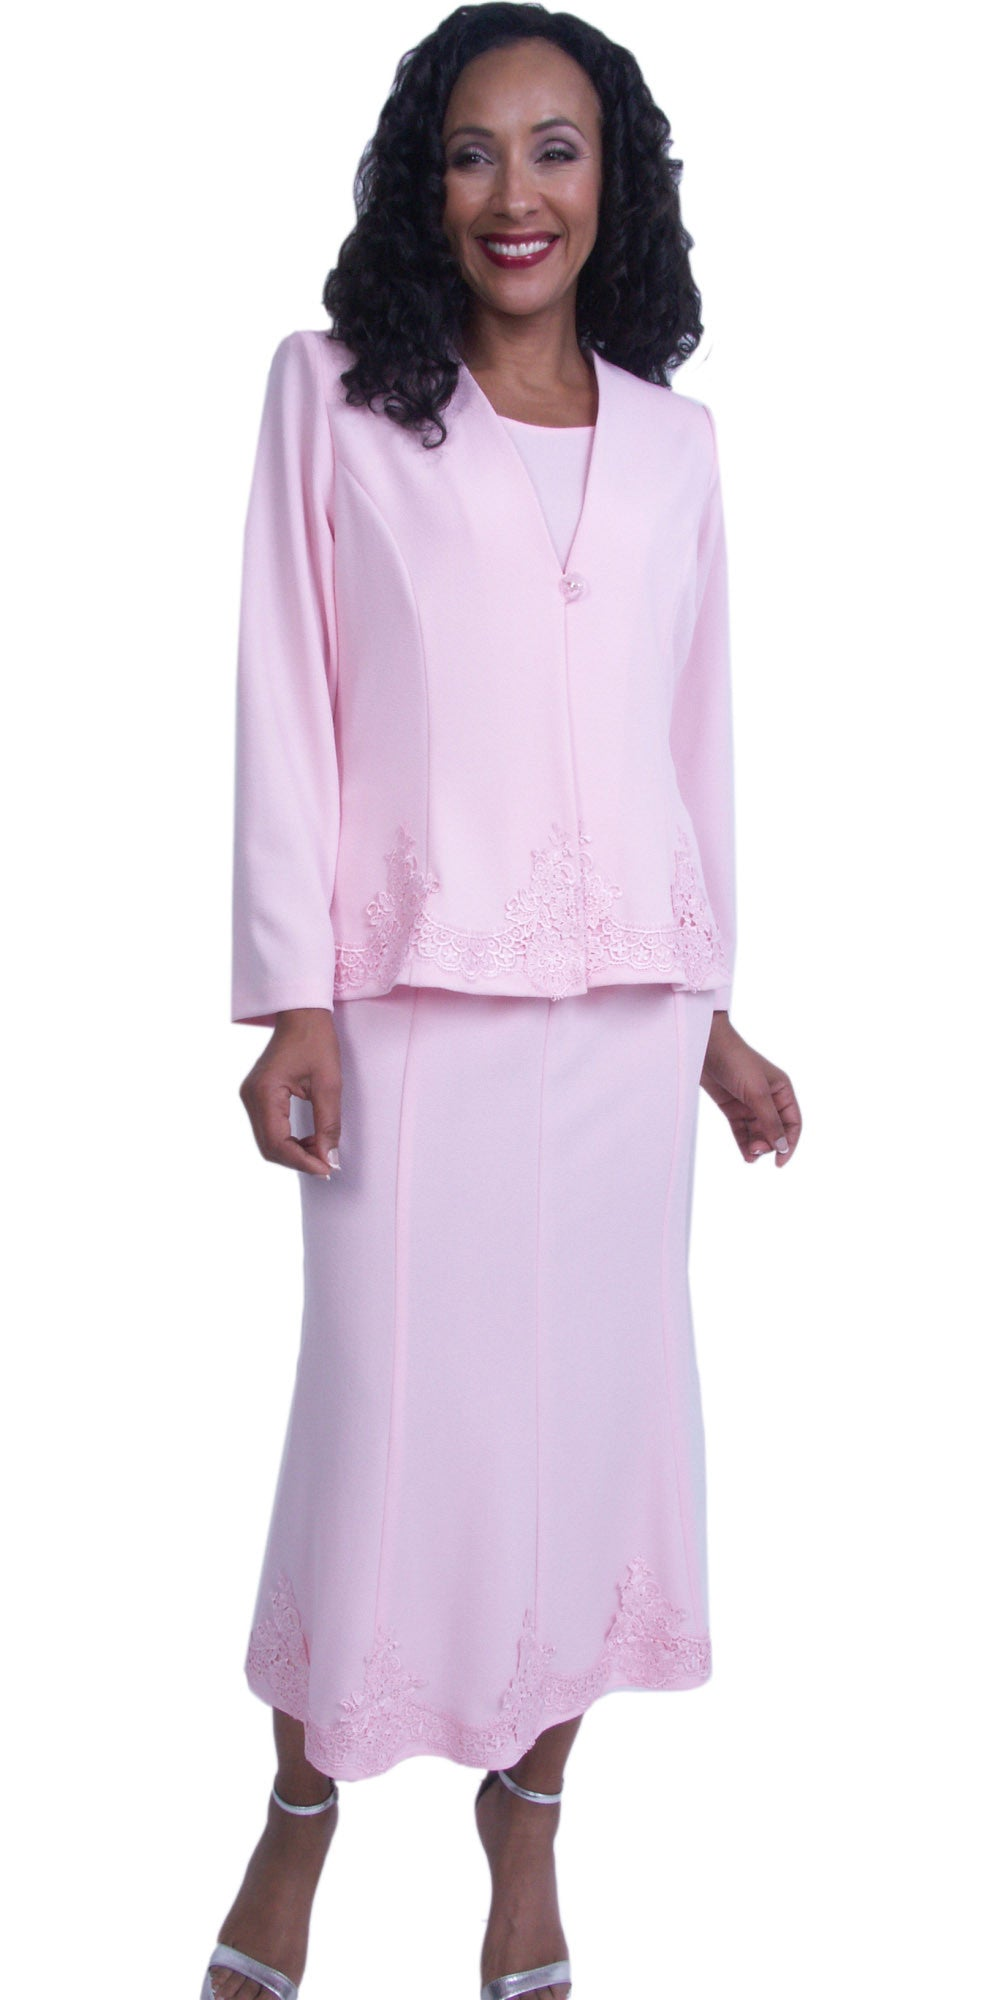 Pink Embroidered Jacket and Skirt Modest Tea-Length Dress